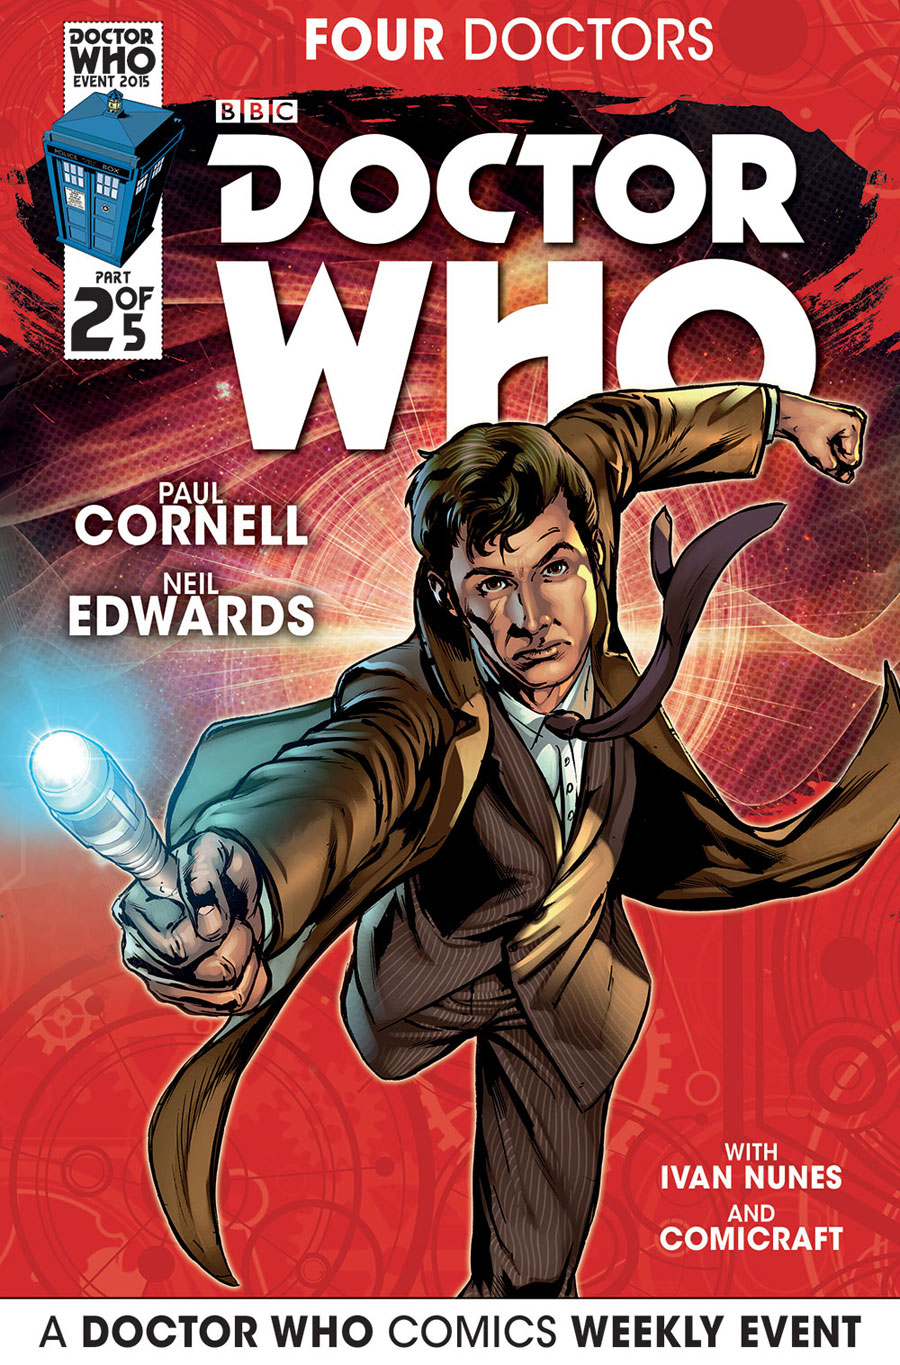 Titan-Comics-Doctor-Who-2-Four-Doctors-Doctor-Who-Brasil